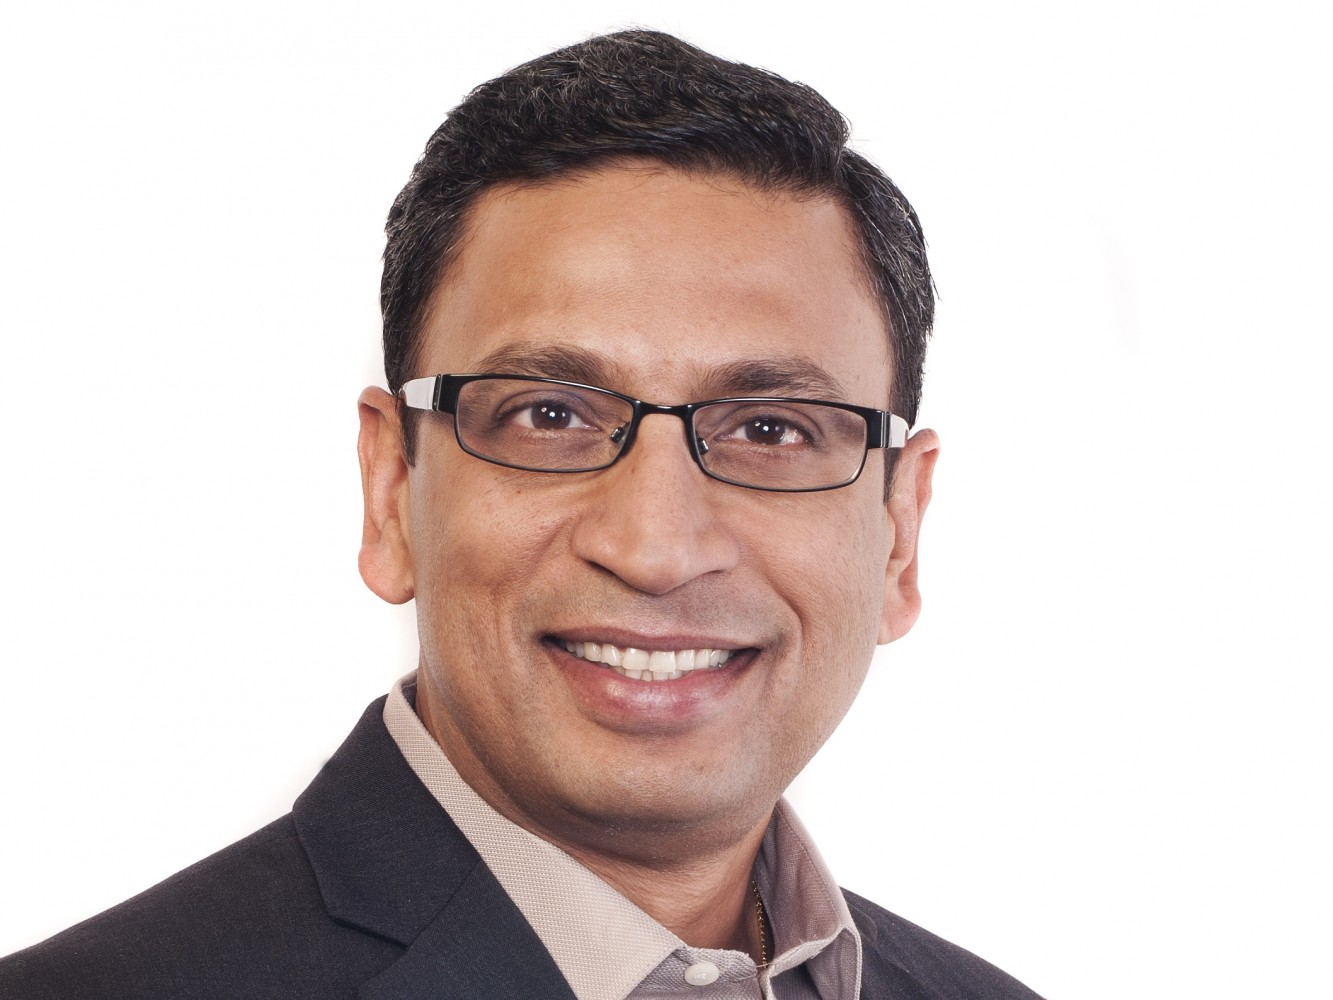 Himanshu Palsule, EVP and Chief Product and Technology Officer Headshot